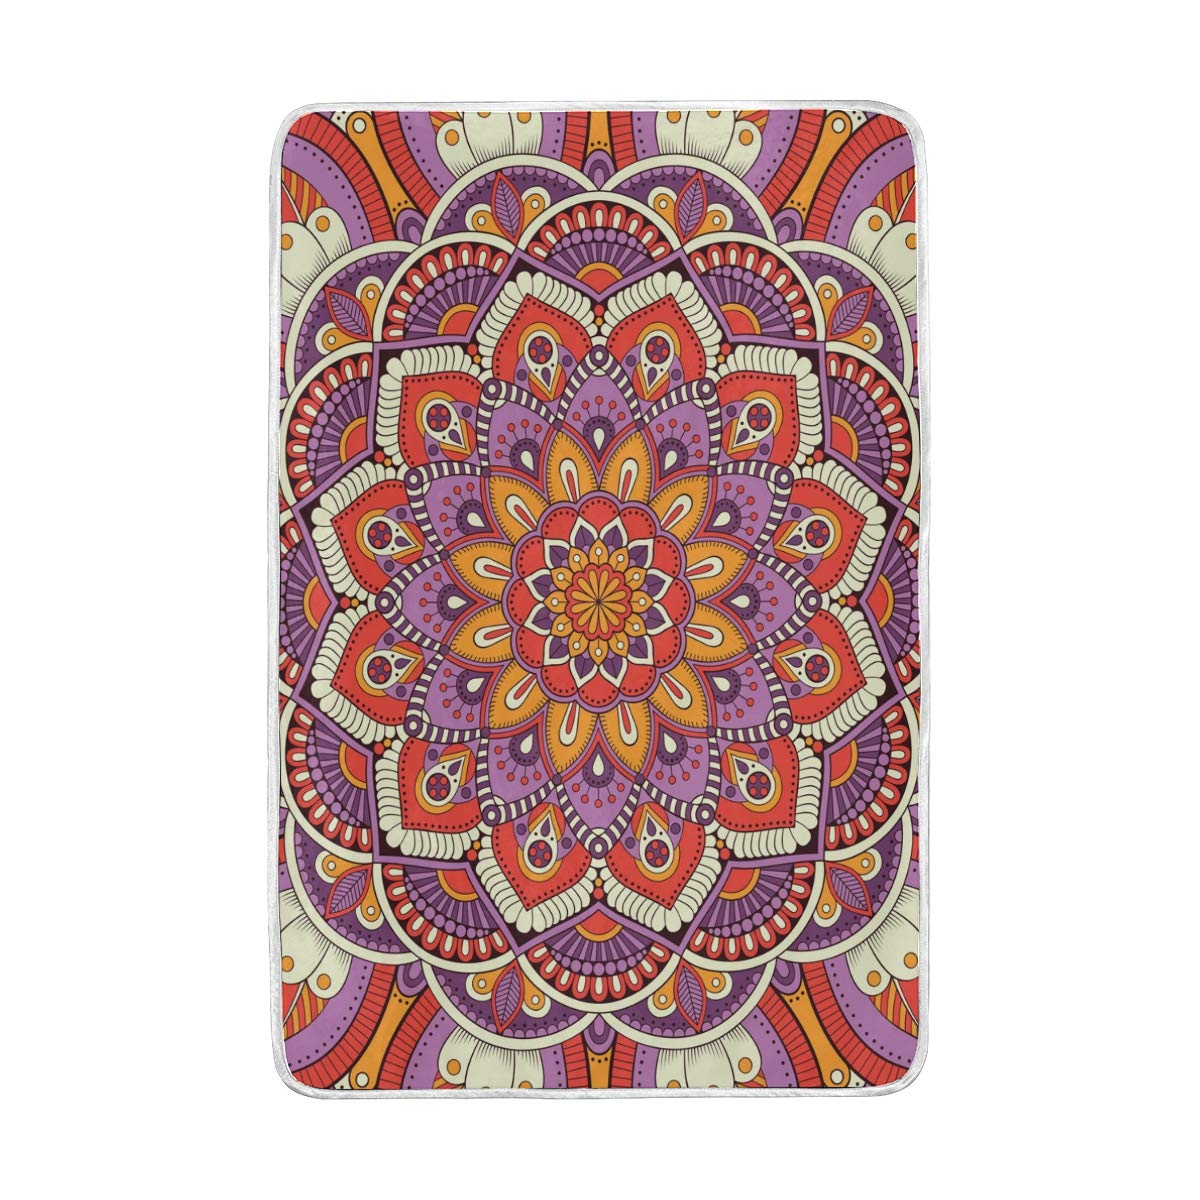 Amazon.com: WXLIFE Indian Mandala Floral Flower Soft Warm ...